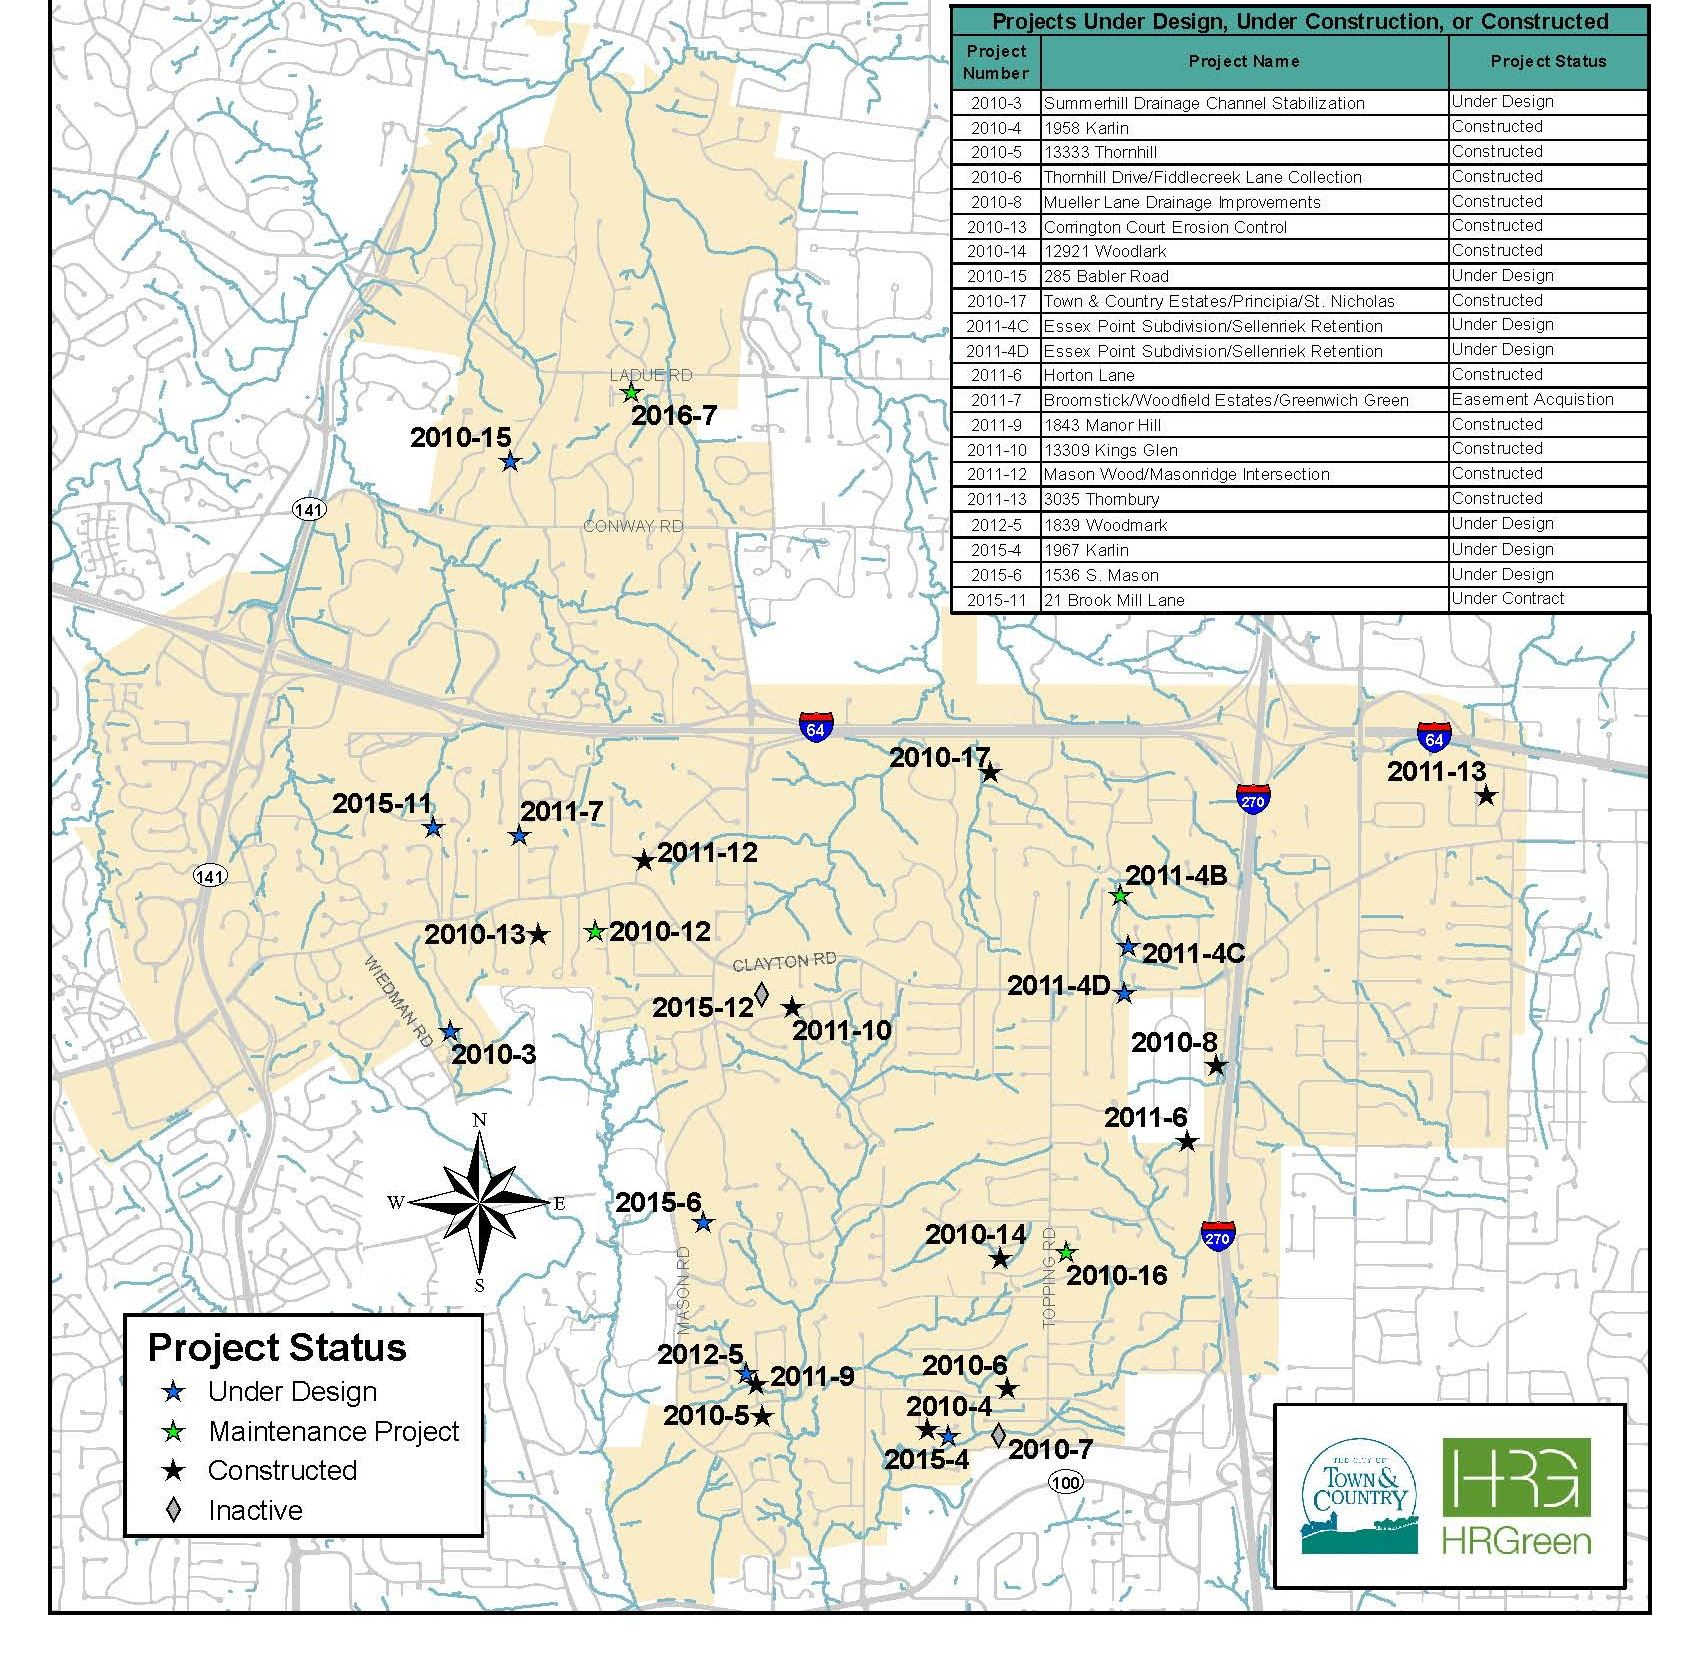 2017 Stormwater Under Construction Map